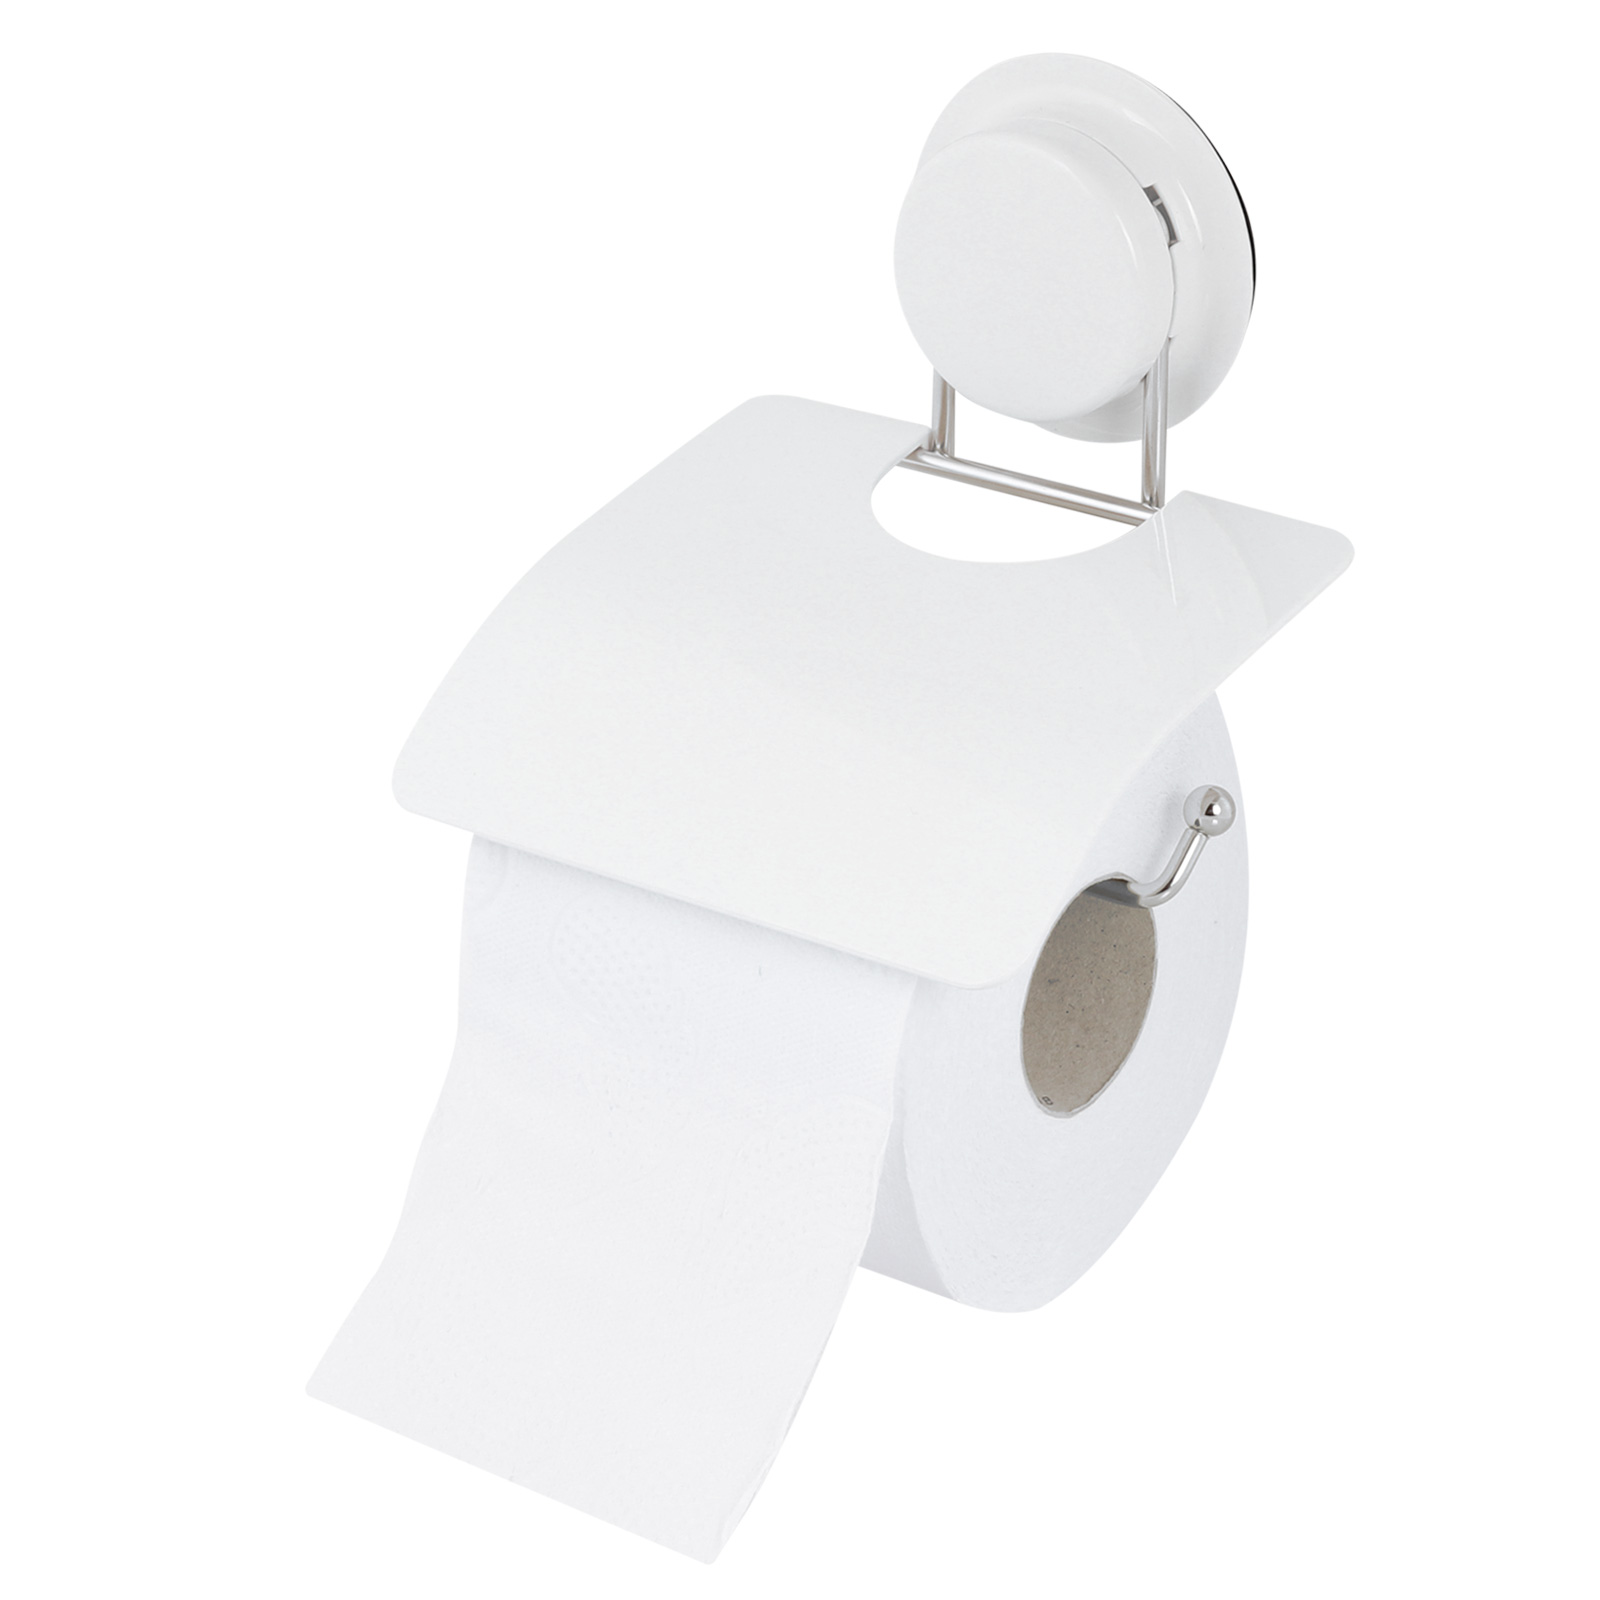 alpina toilet paper holder without drilling steel 5kg load white